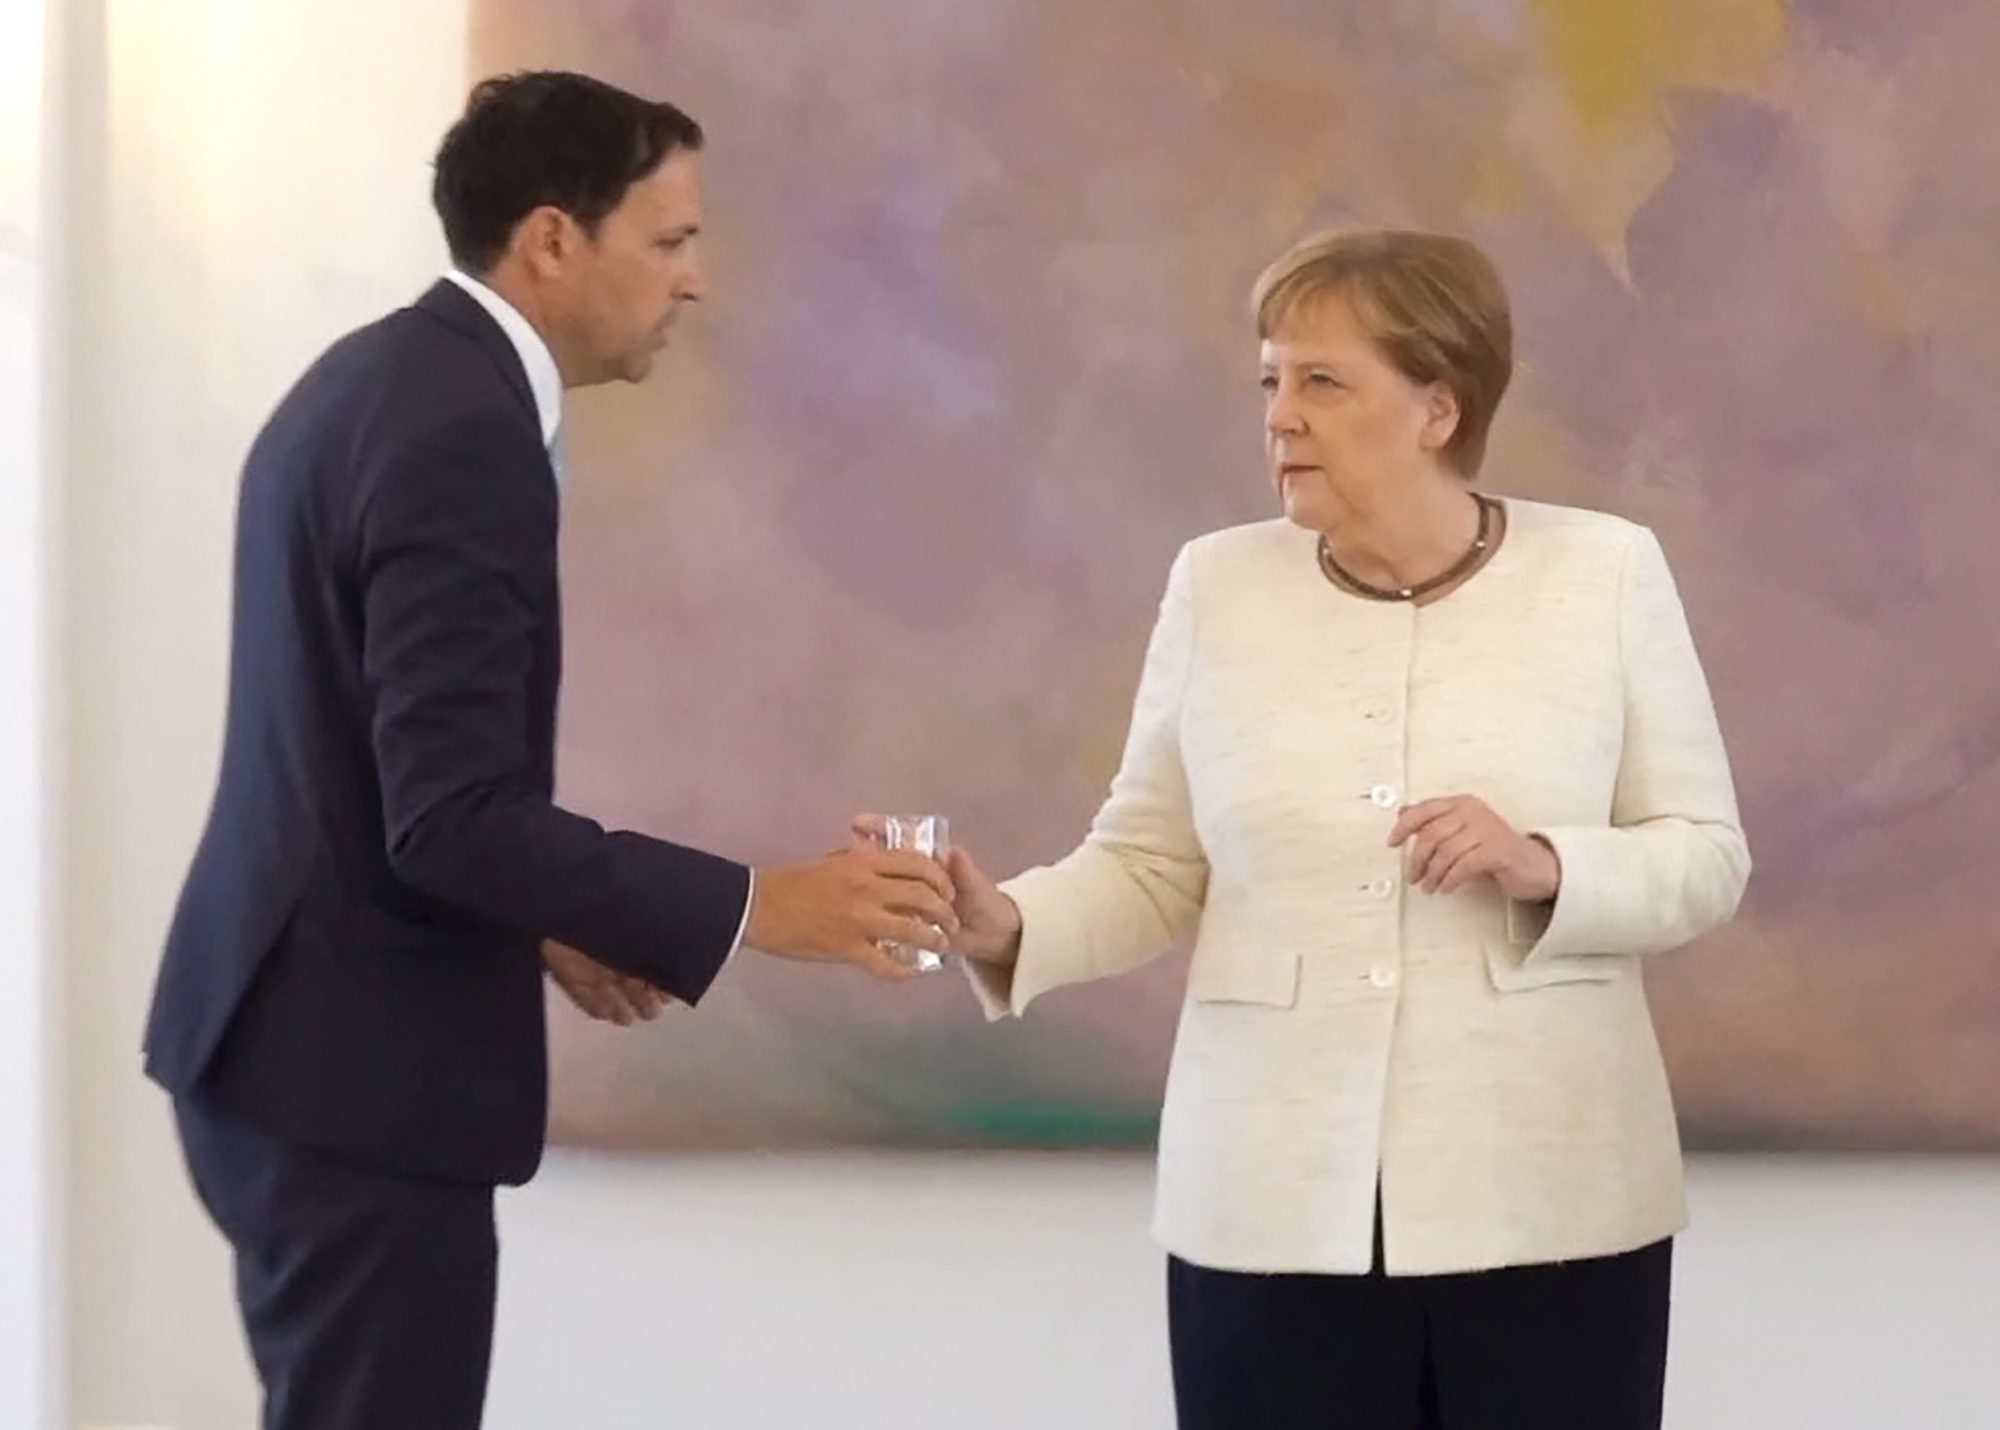 Doctor Weighs In on Possible Cause of Merkel's Shaking